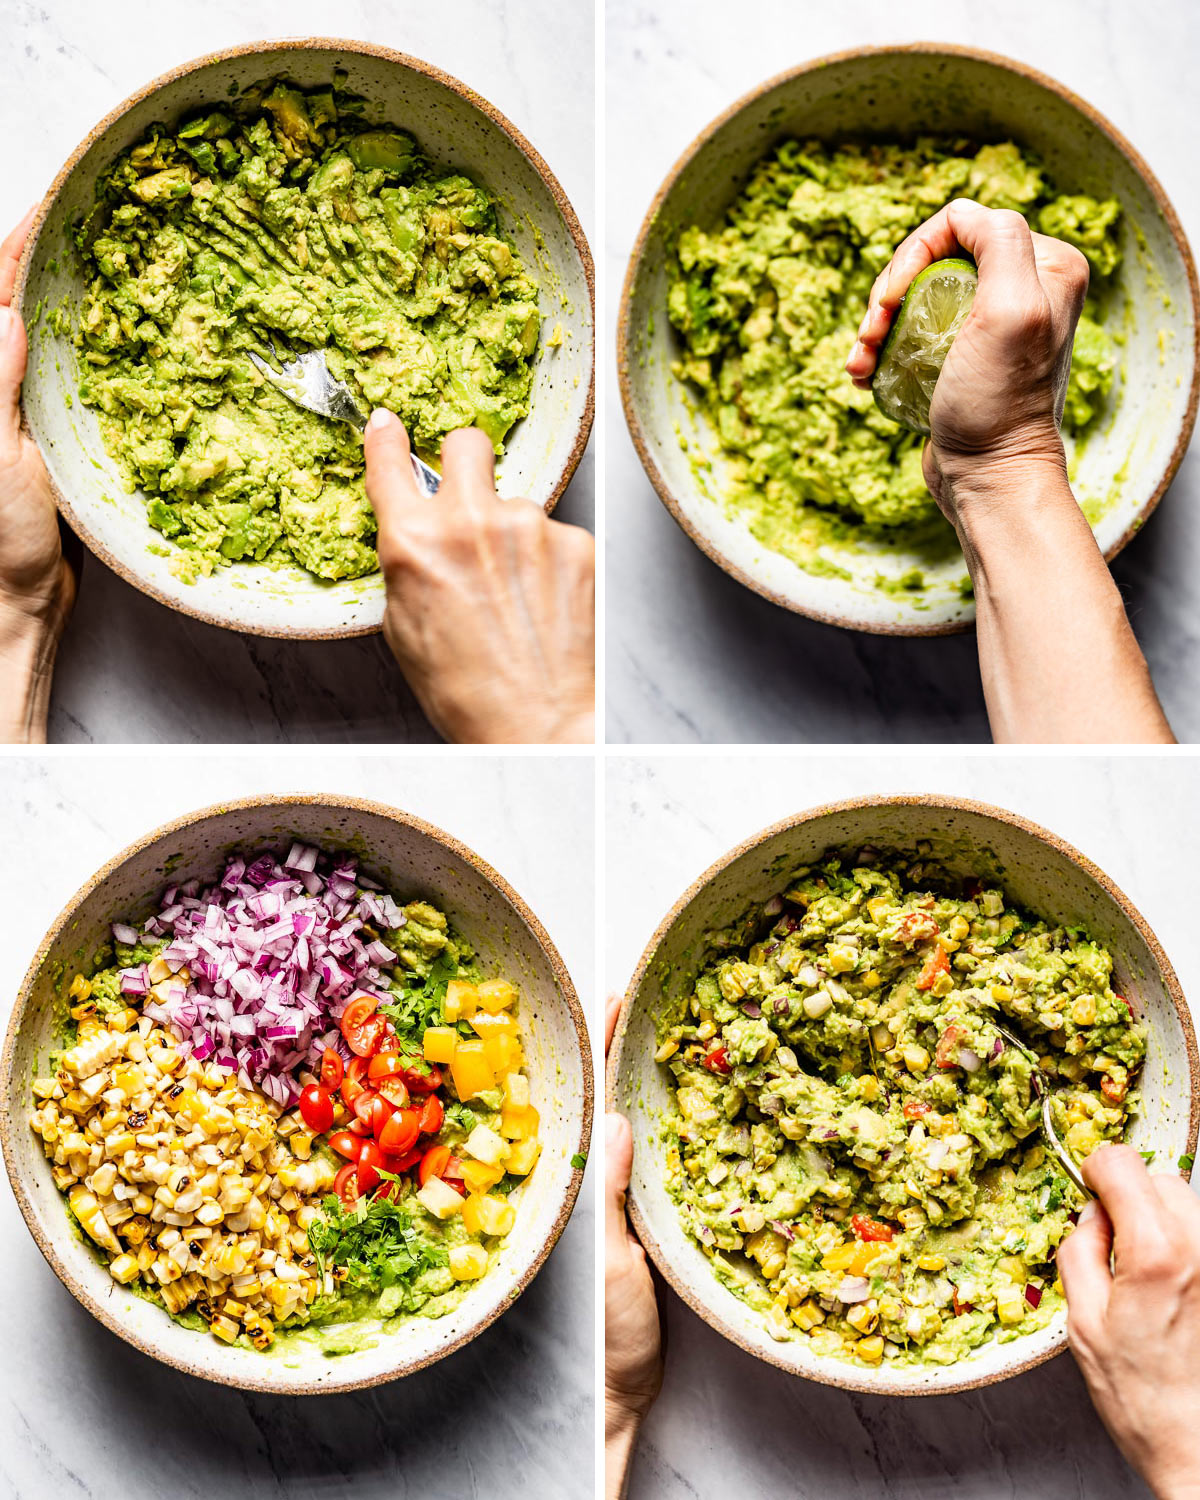 Person showing the steps of how to make this corn guacamole recipe in four images